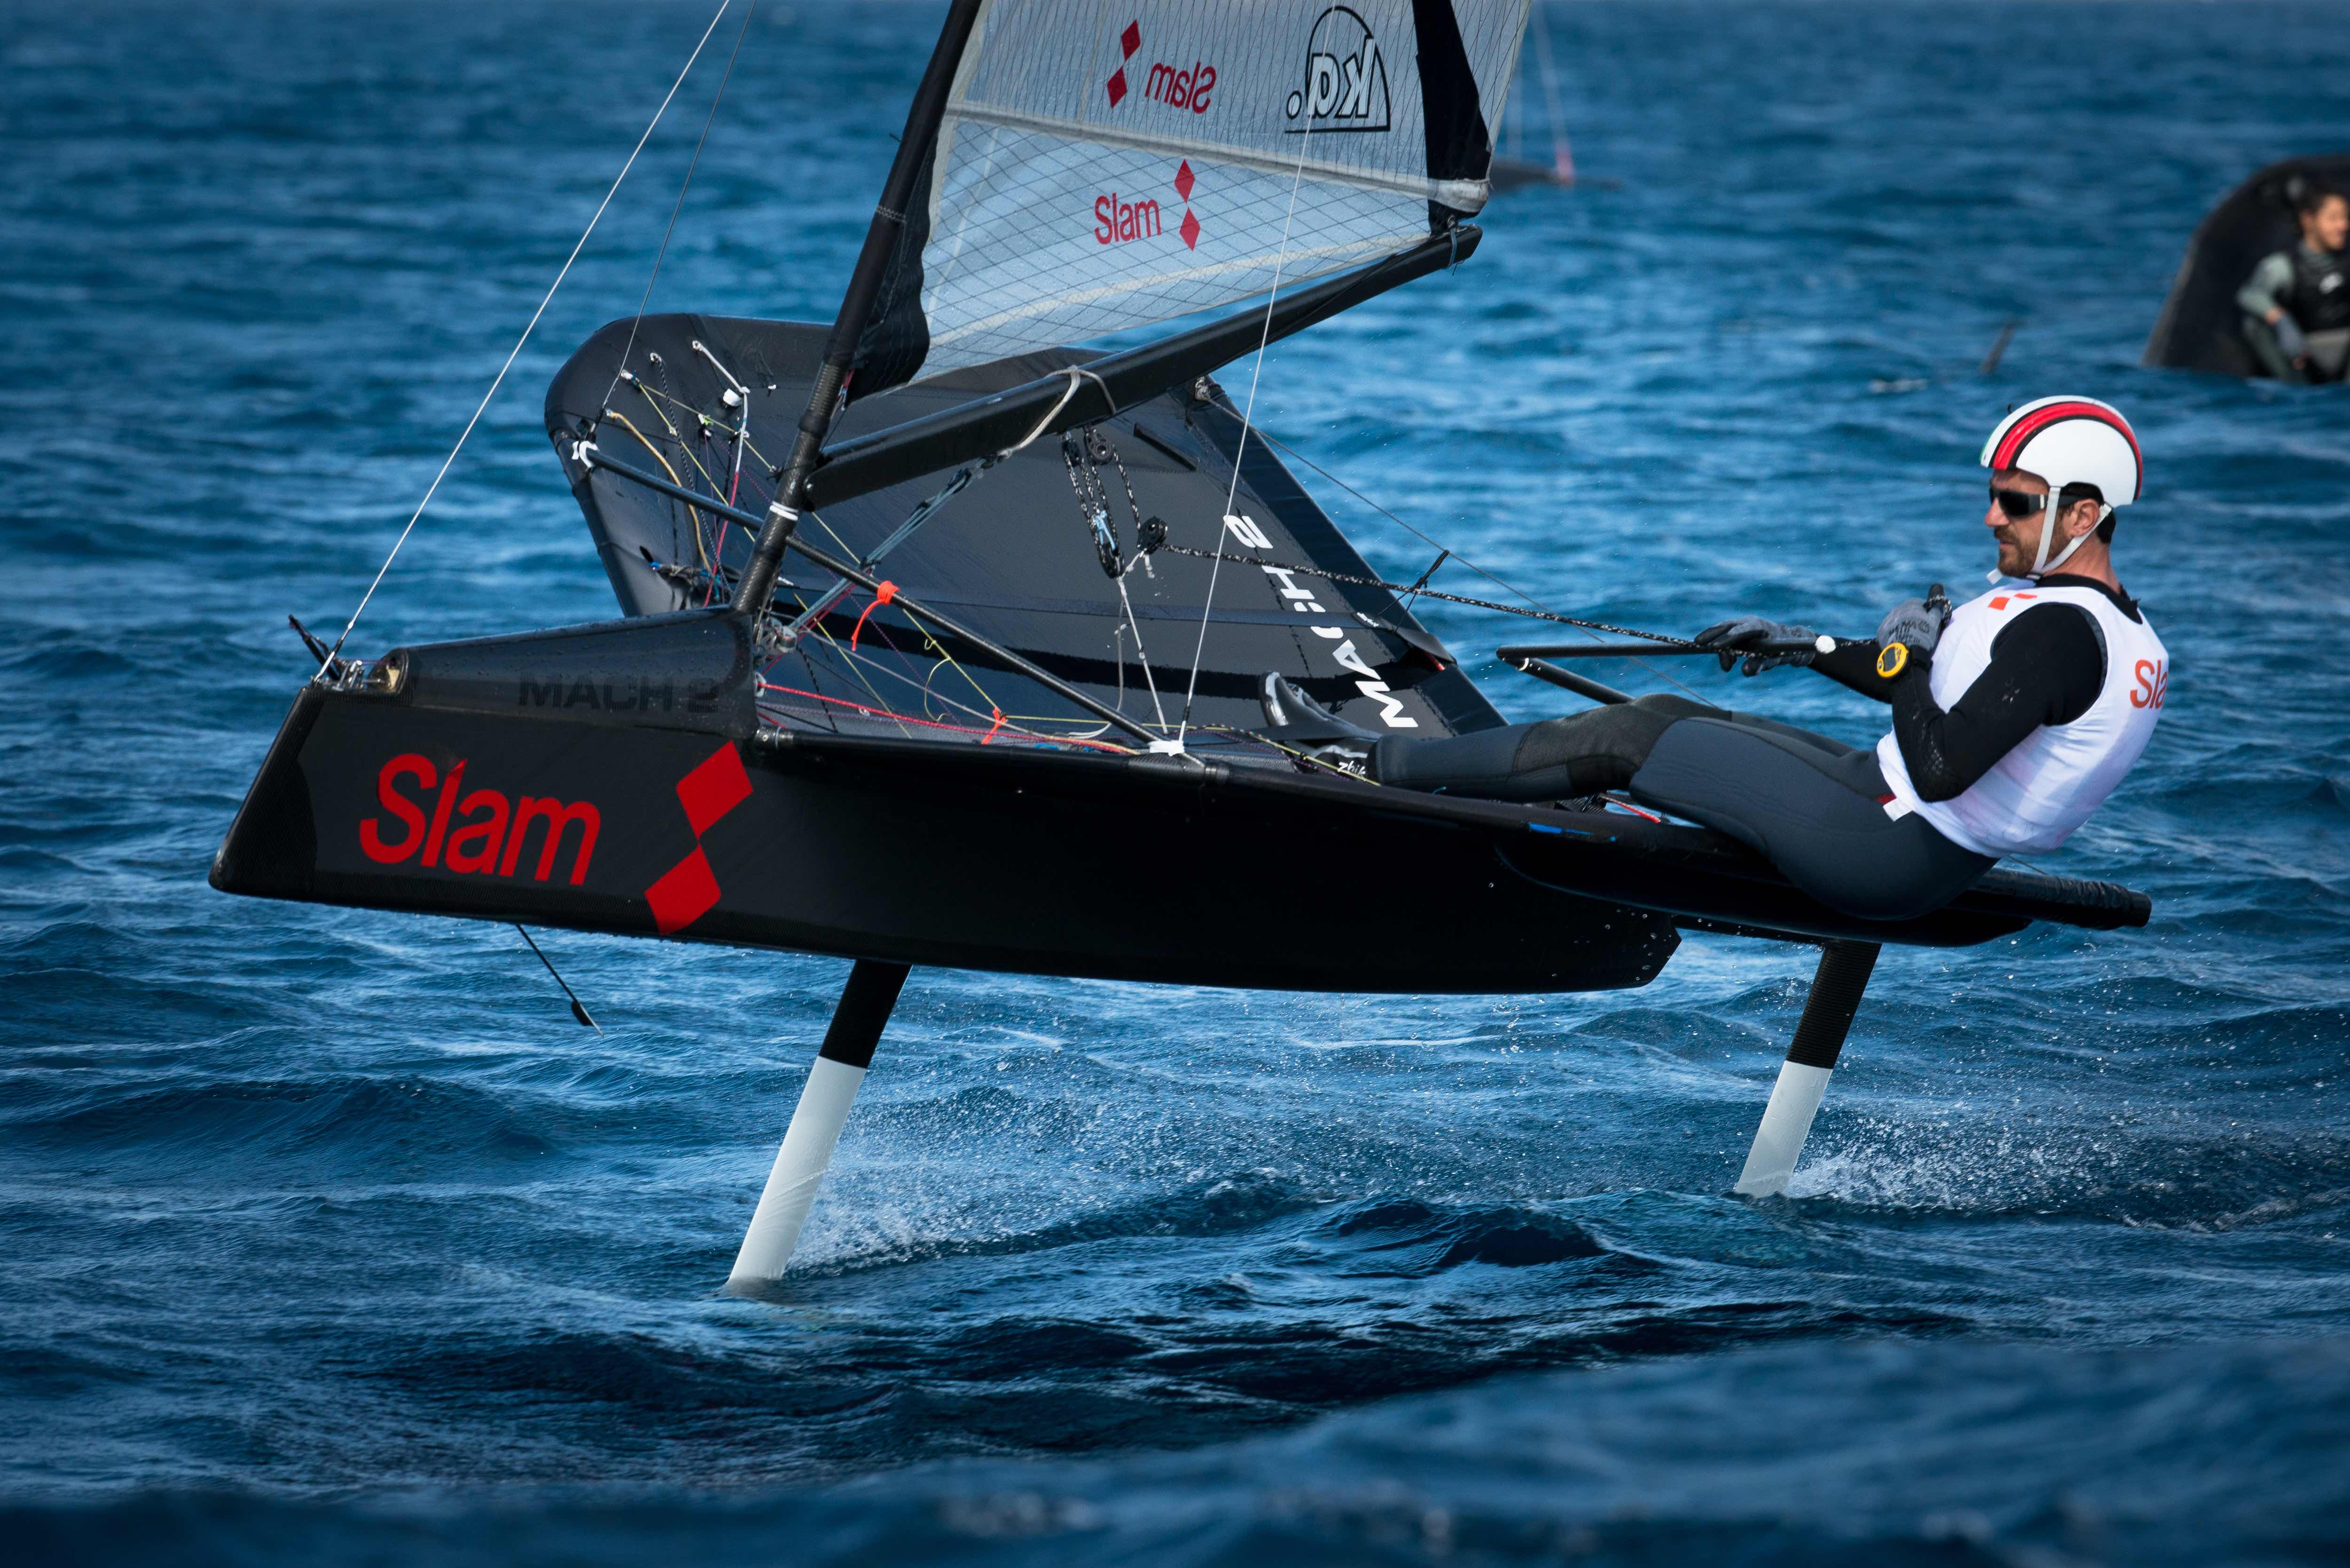 Slam è sponsor tecnico di The Foiling Week Global Tour 2017